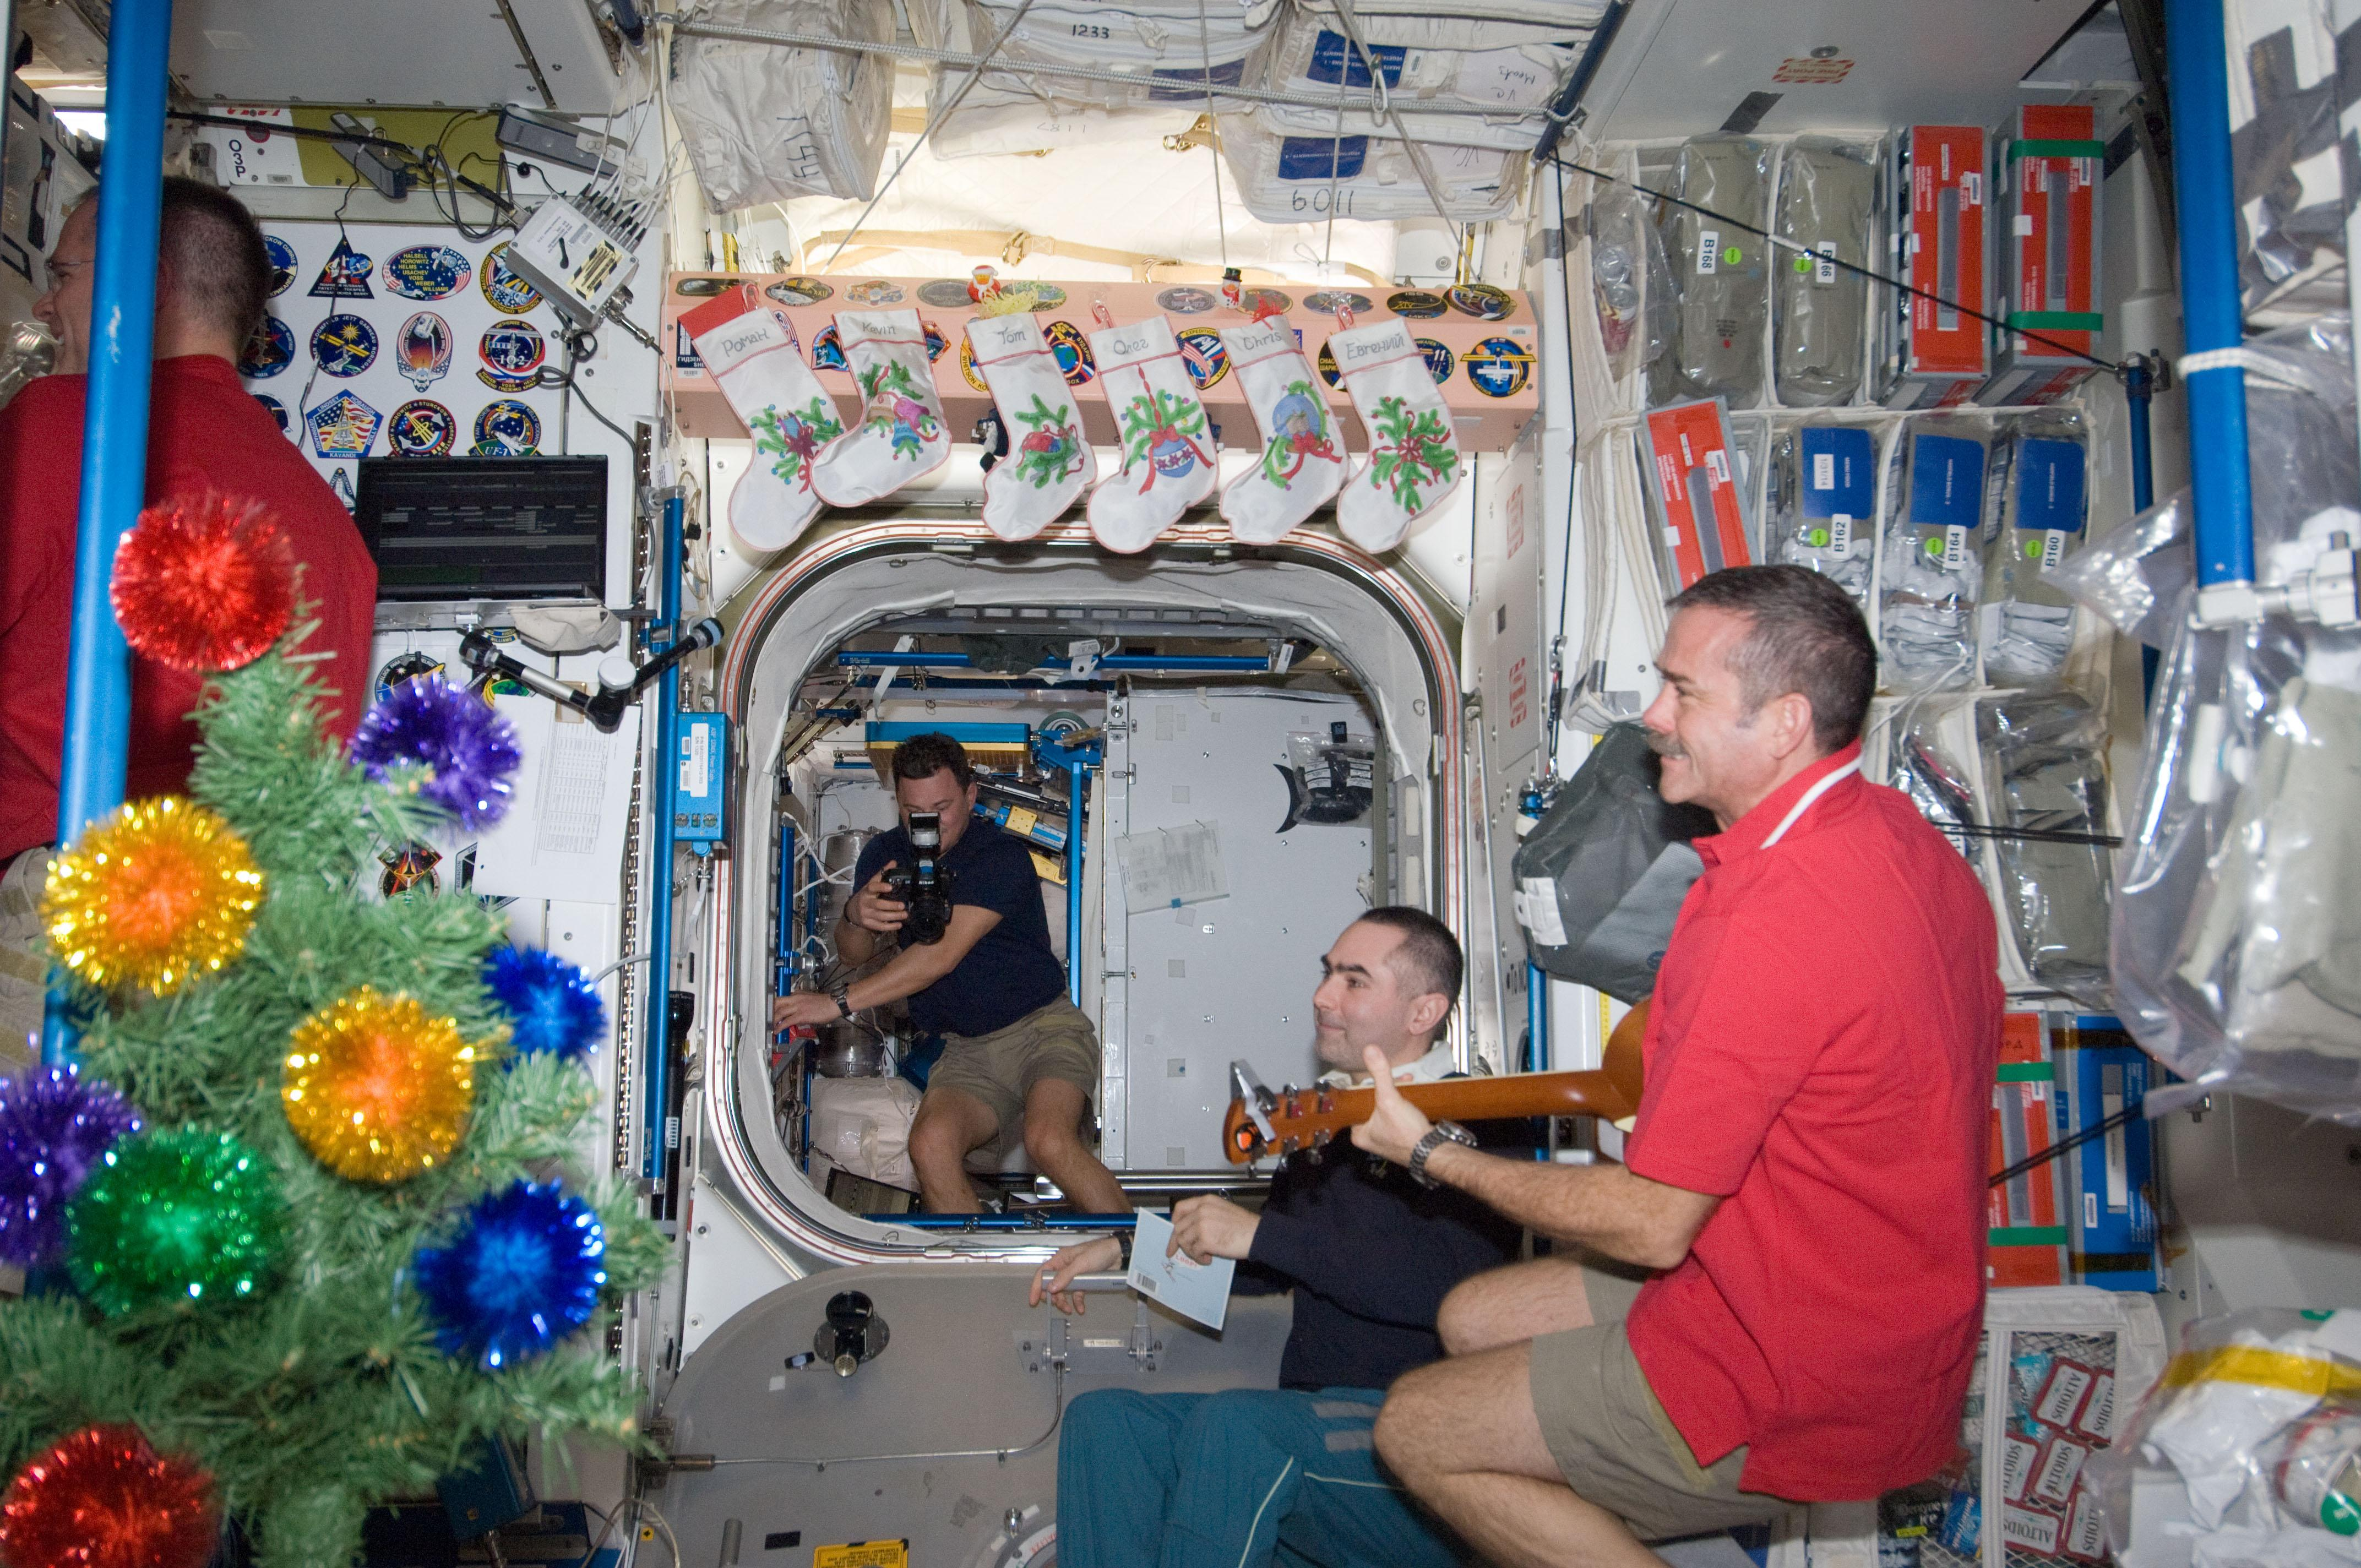 xmas on iss 2012